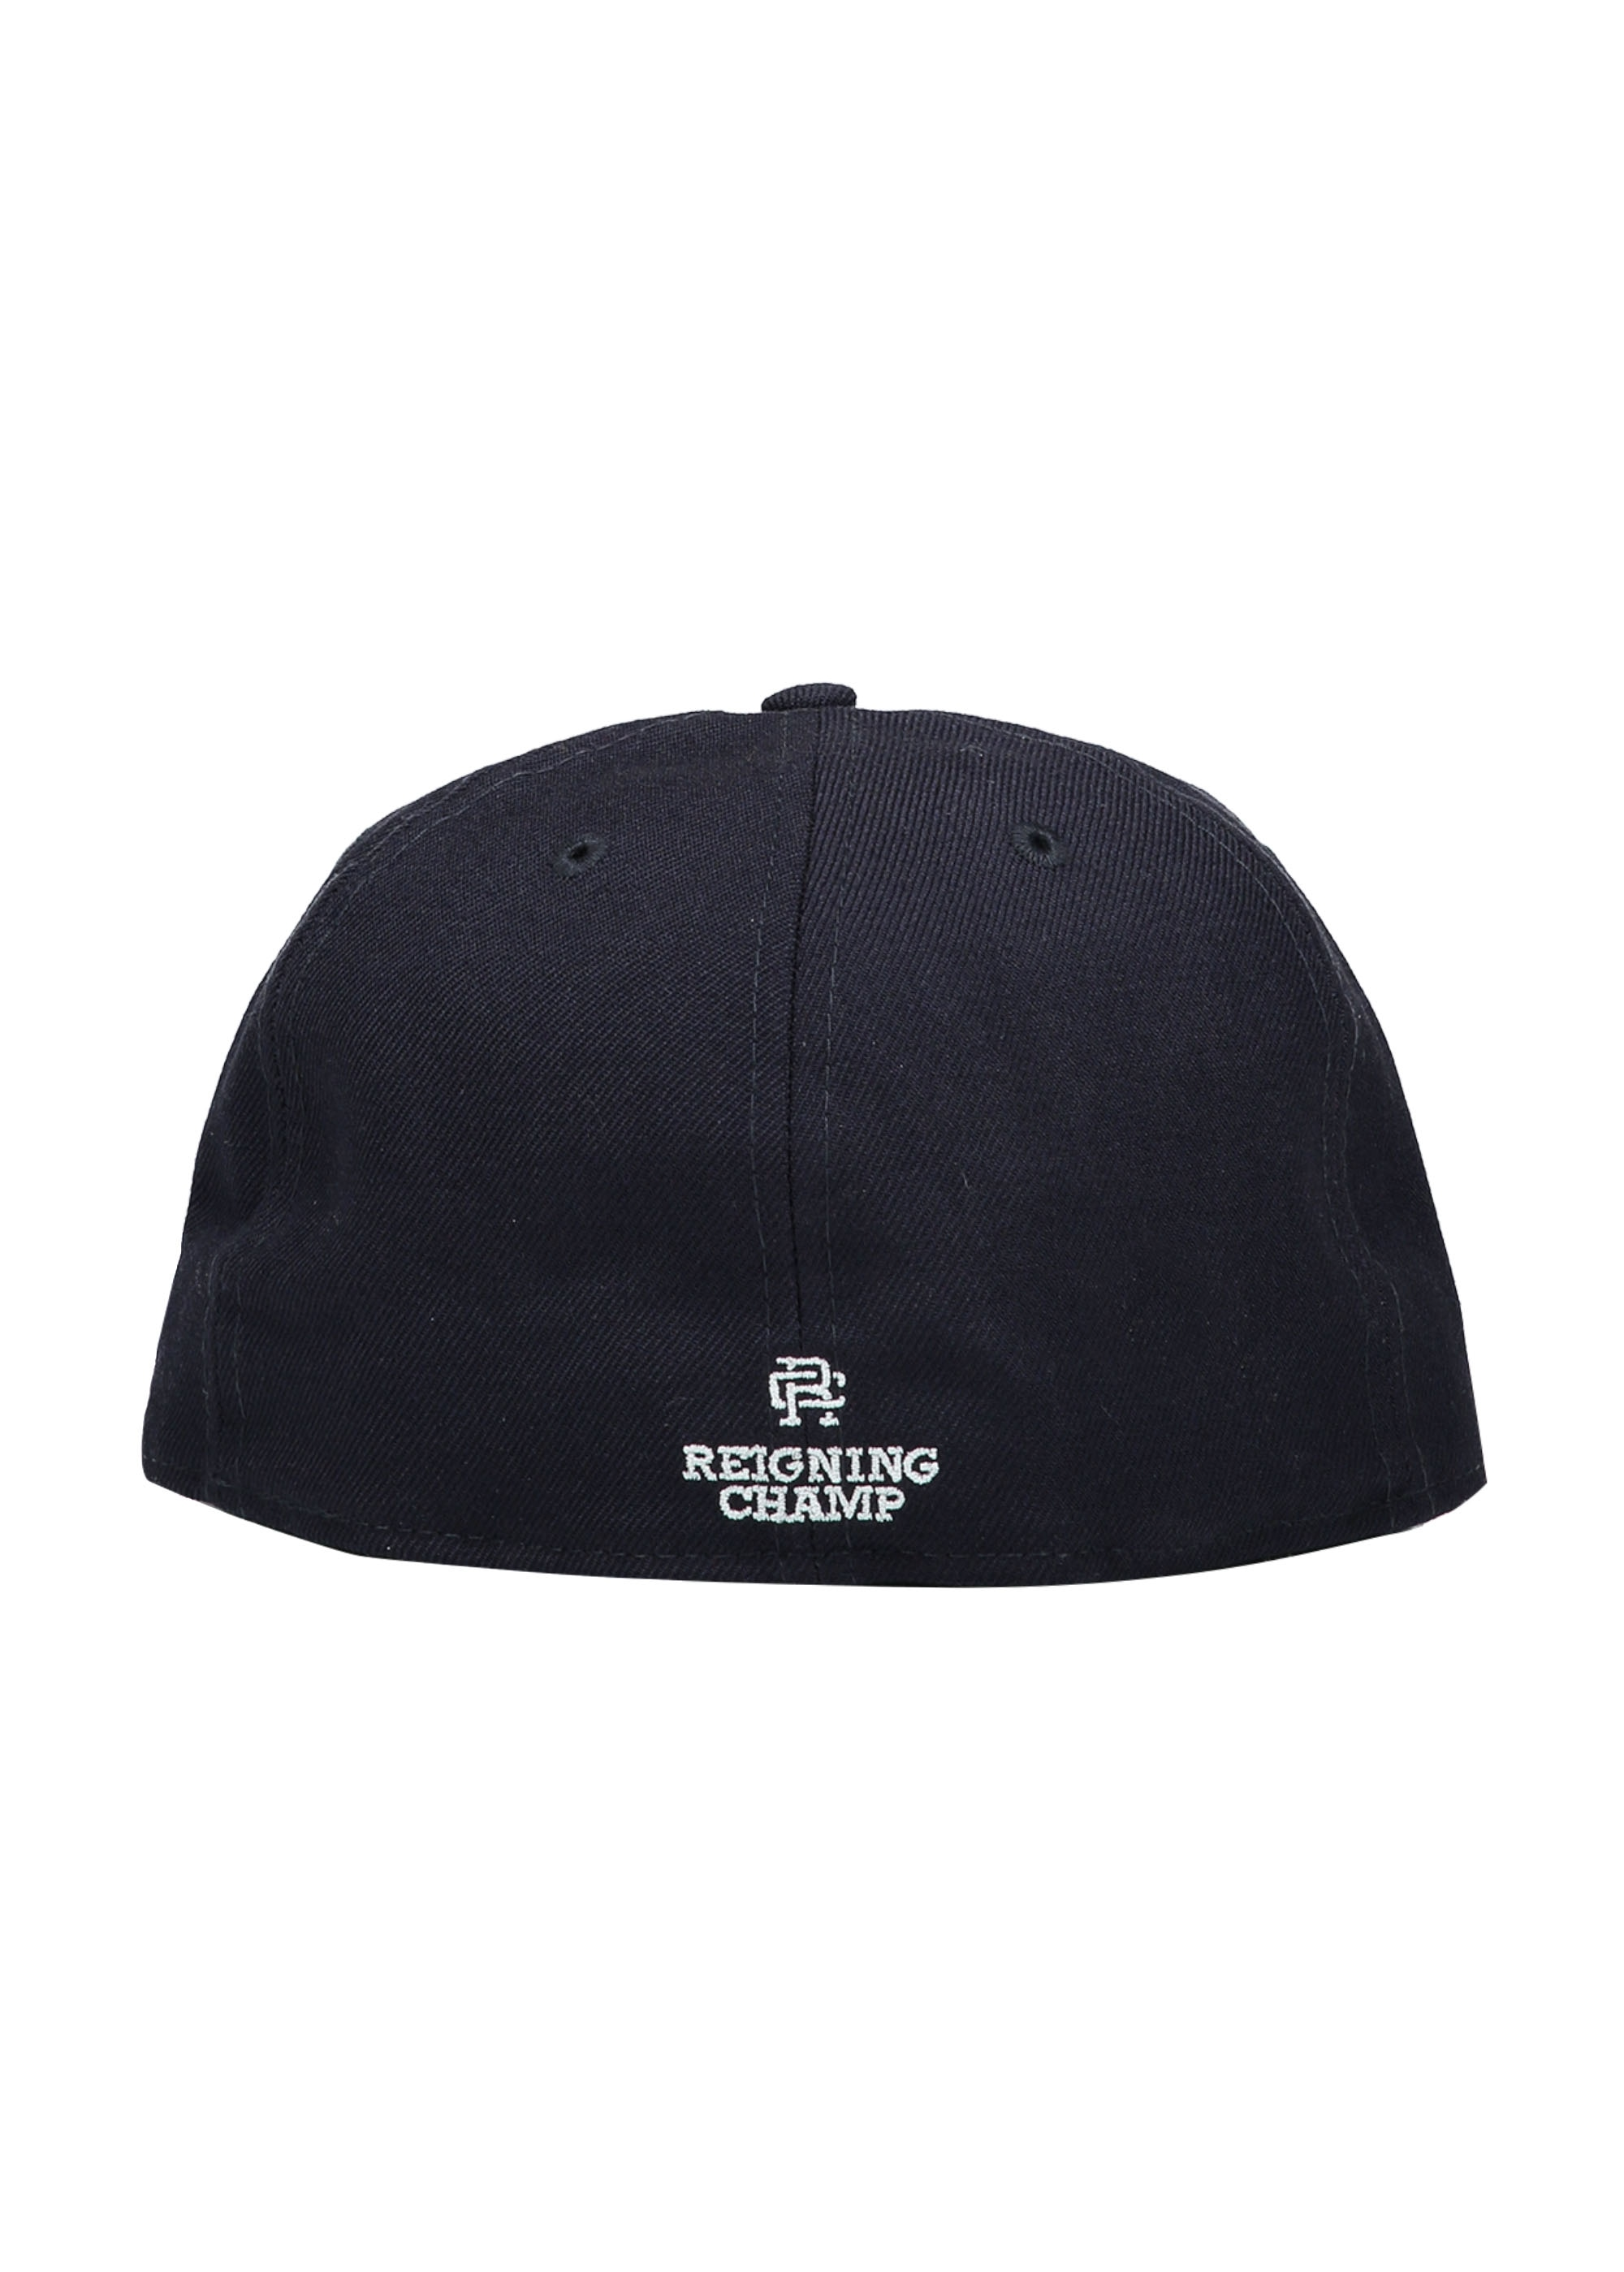 29b93142061 Reigning Champ x New Era Embroidered Cap - Navy - Headwear from ...